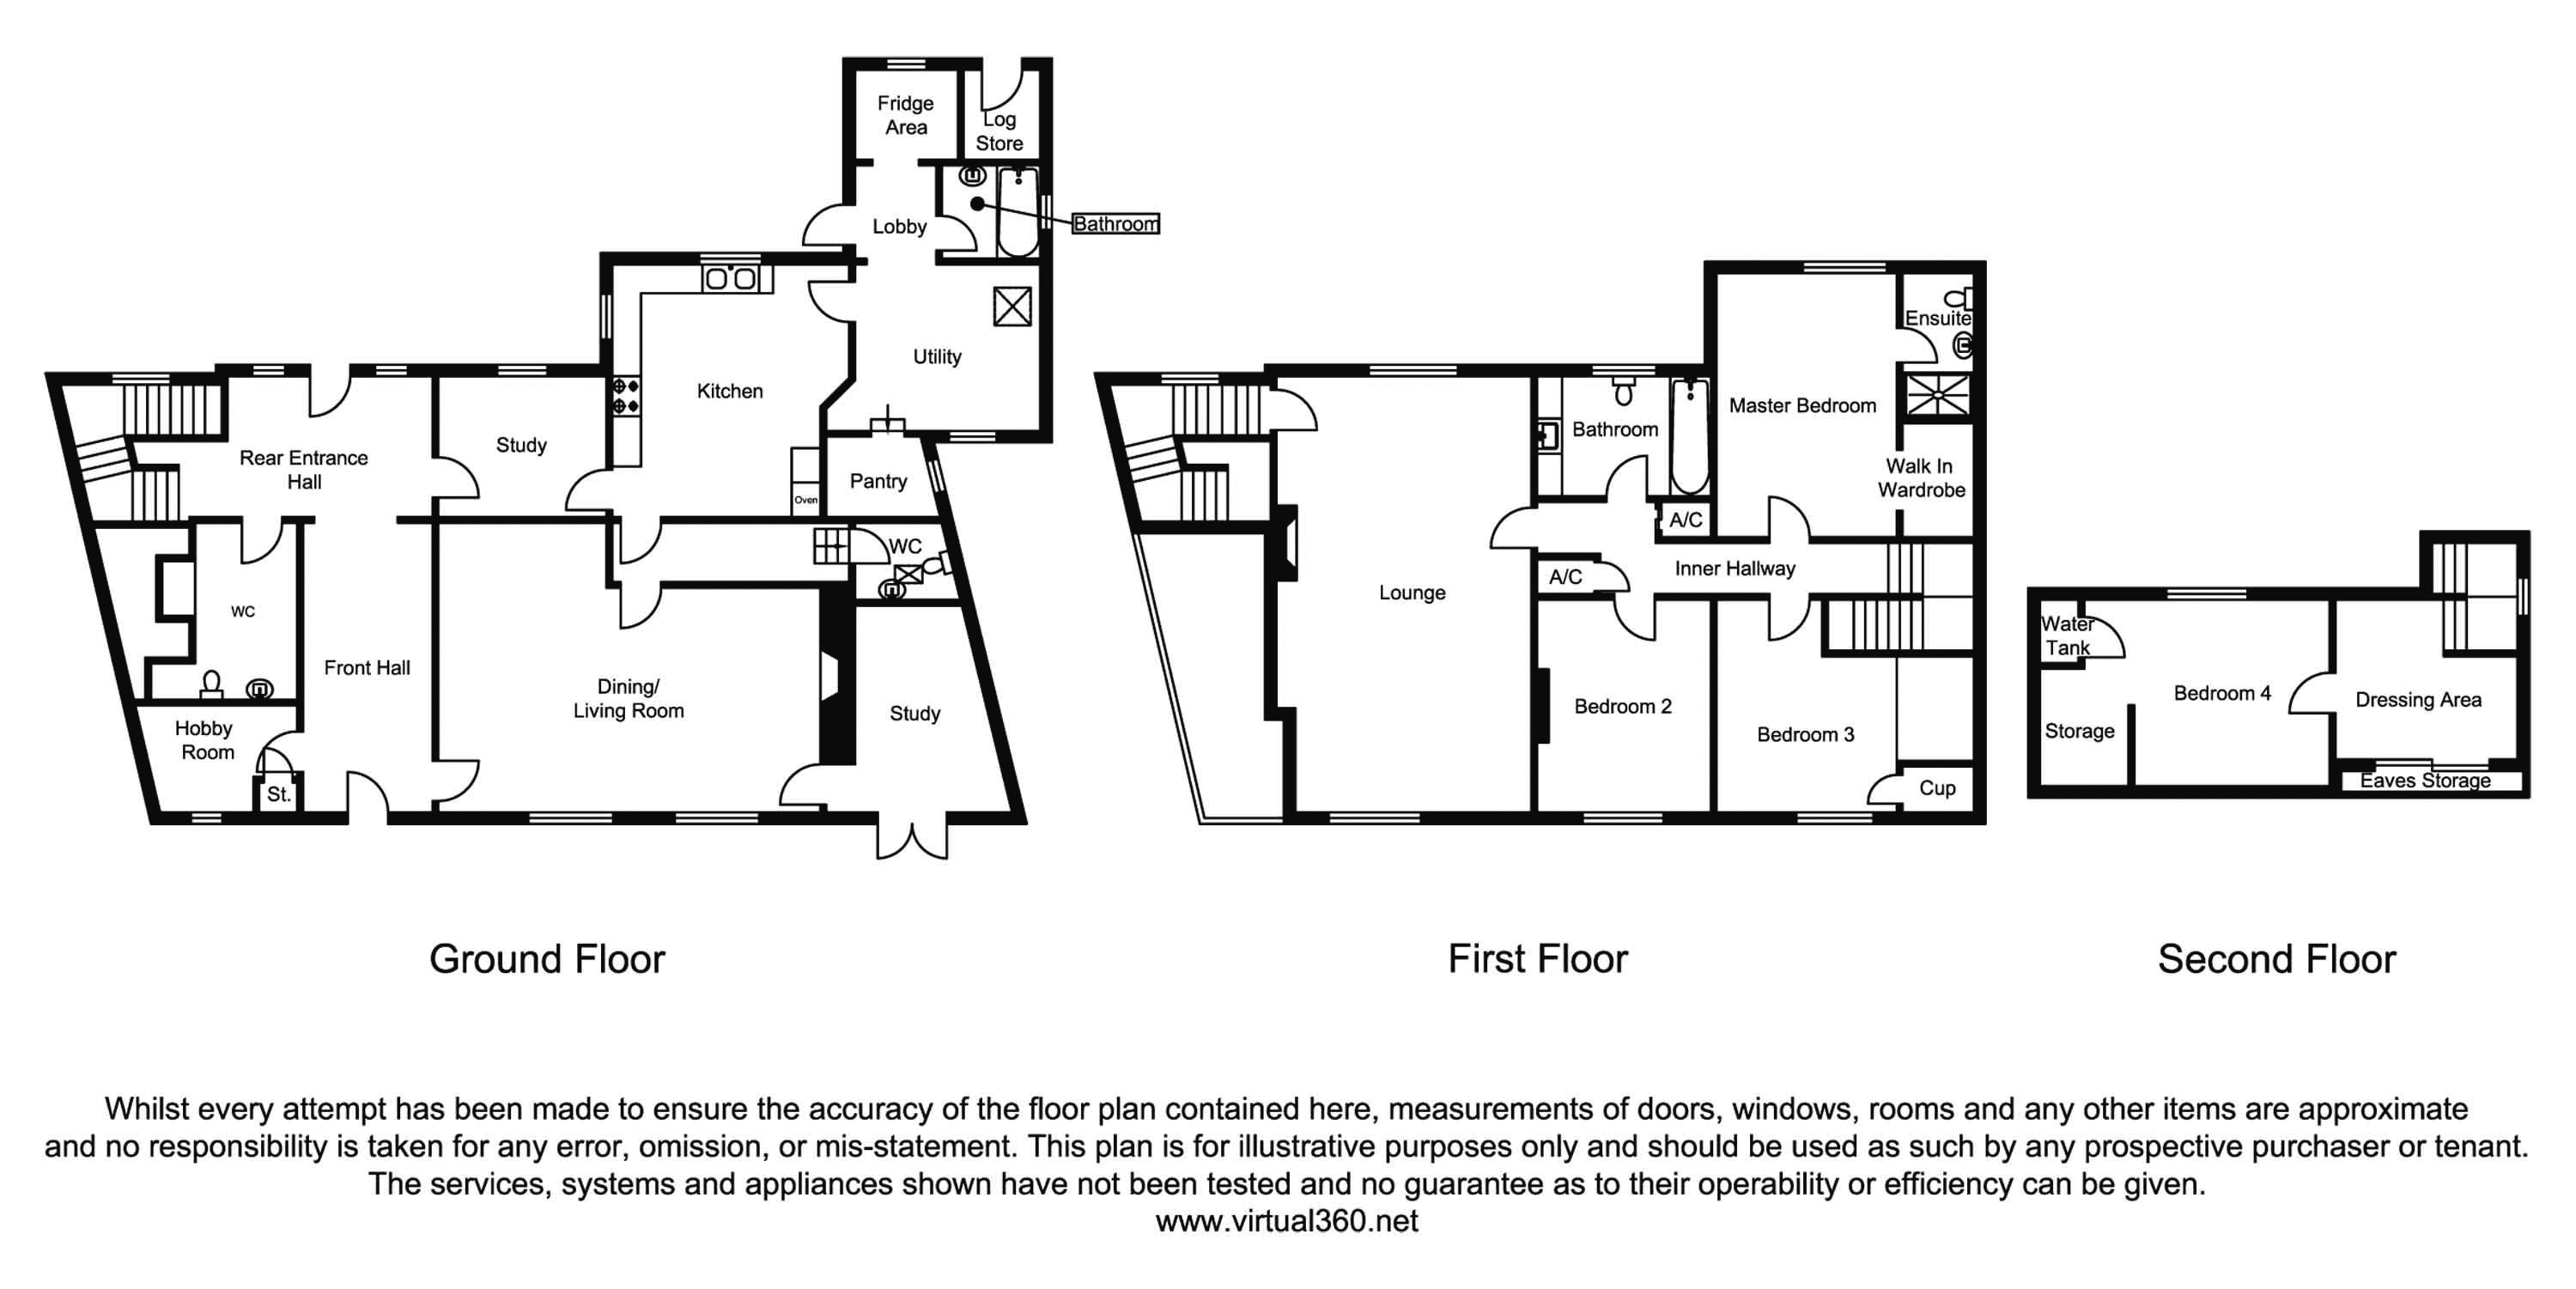 Brislington Hill, Bristol floor plan